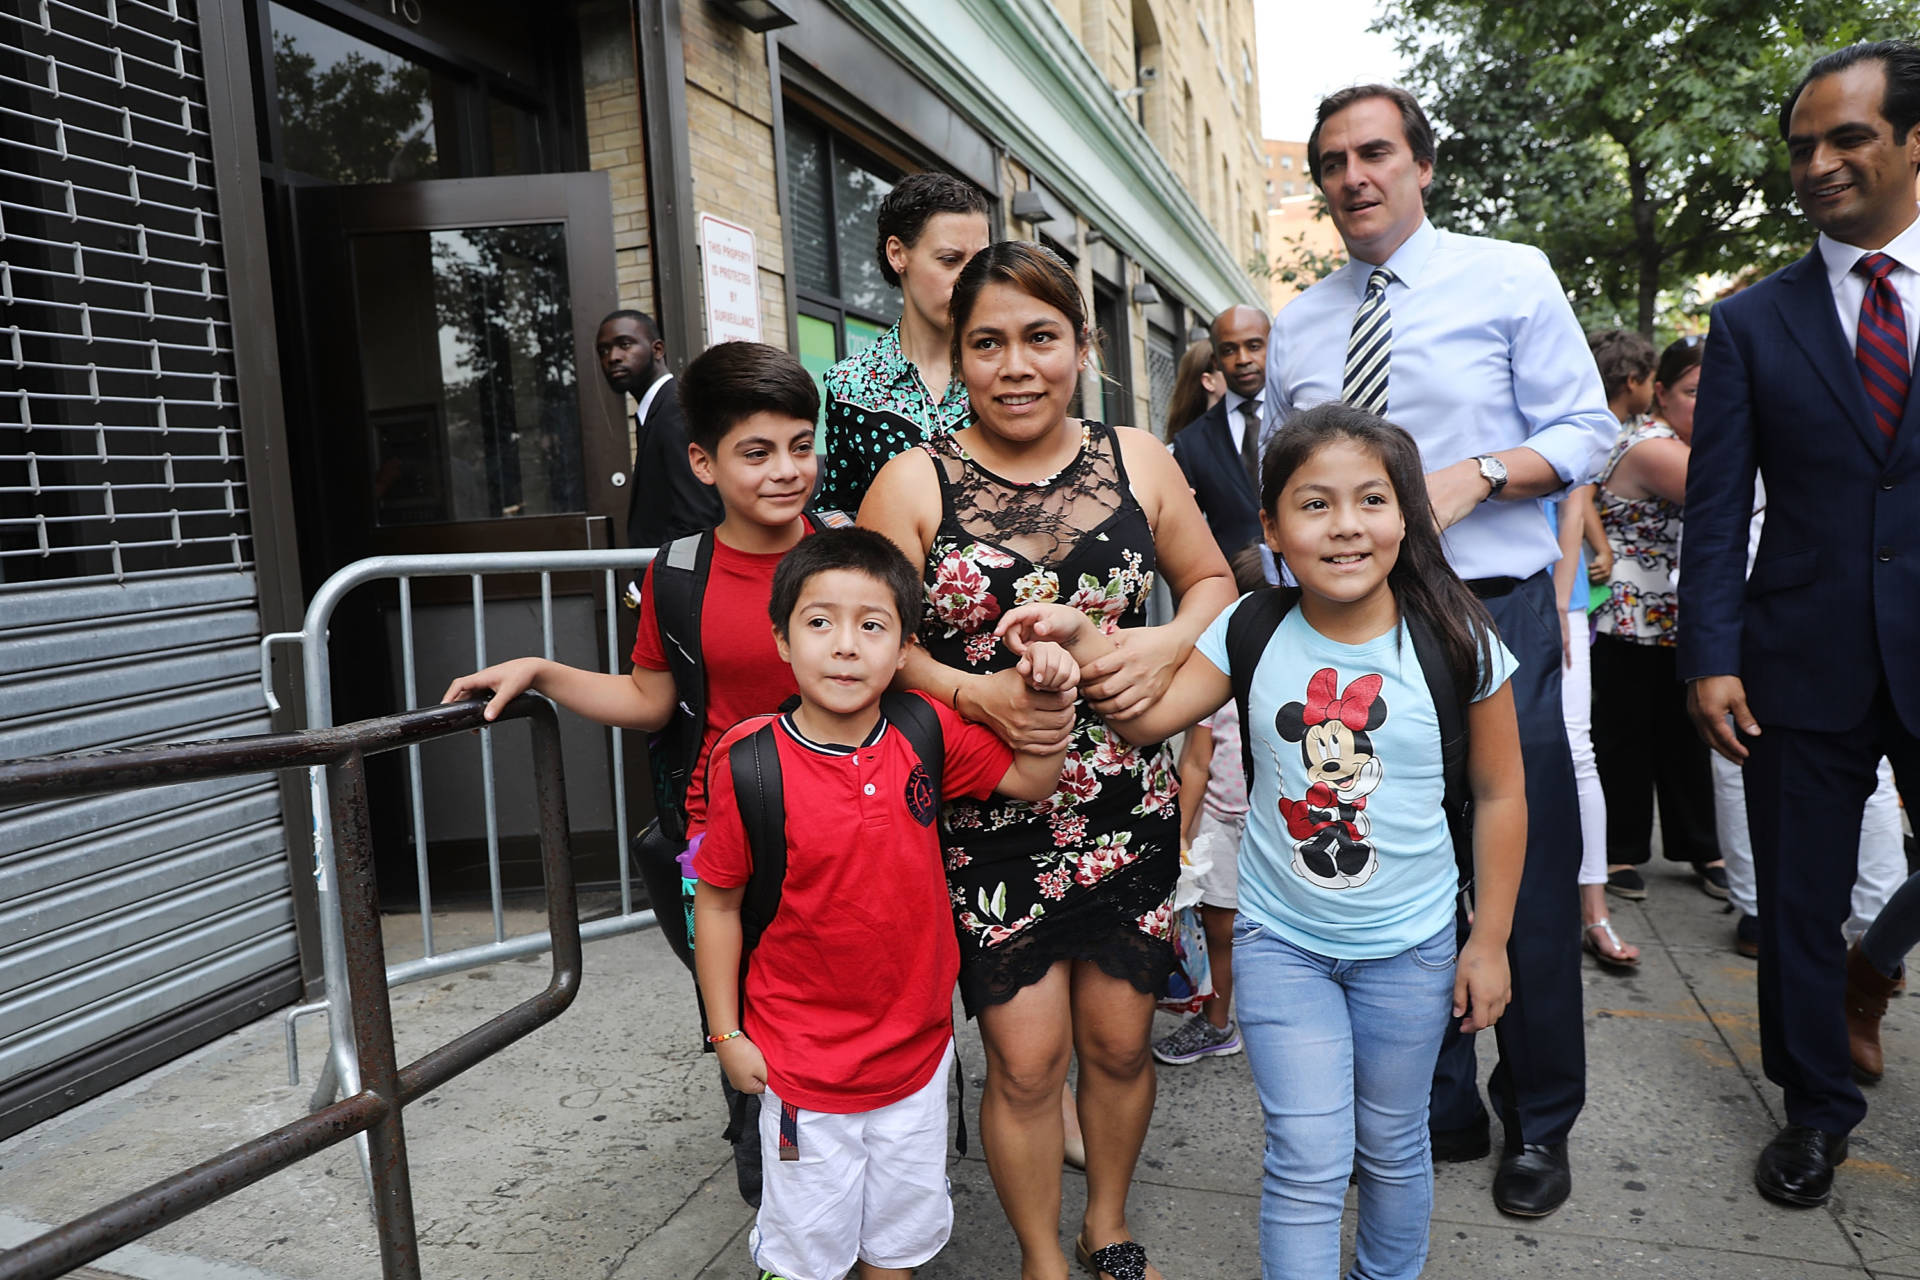 Yeni Maricela Gonzalez Garcia (center) stands with her children 6 year-old Deyuin (left), 9 year-old Jamelin (right) and 11 year-old Lester (back) as she and her lawyer speak with the news media after she was reunited with her children at the East Harlem Cayuga Centers on July 13, 2018 in New York City. Gonzalez Garcia, from Guatemala, drove cross-country to be reunited with her three children after they were taken from an Arizona immigration facility over eight weeks ago. Gonzalez Garcia crossed over the U.S. border with her three children on May 19, only two days before they were taken from her as part of President Donald Trump's controversial zero-tolerance policy of removing immigrant children from their parents after they are detained. Spencer Platt/Getty Images